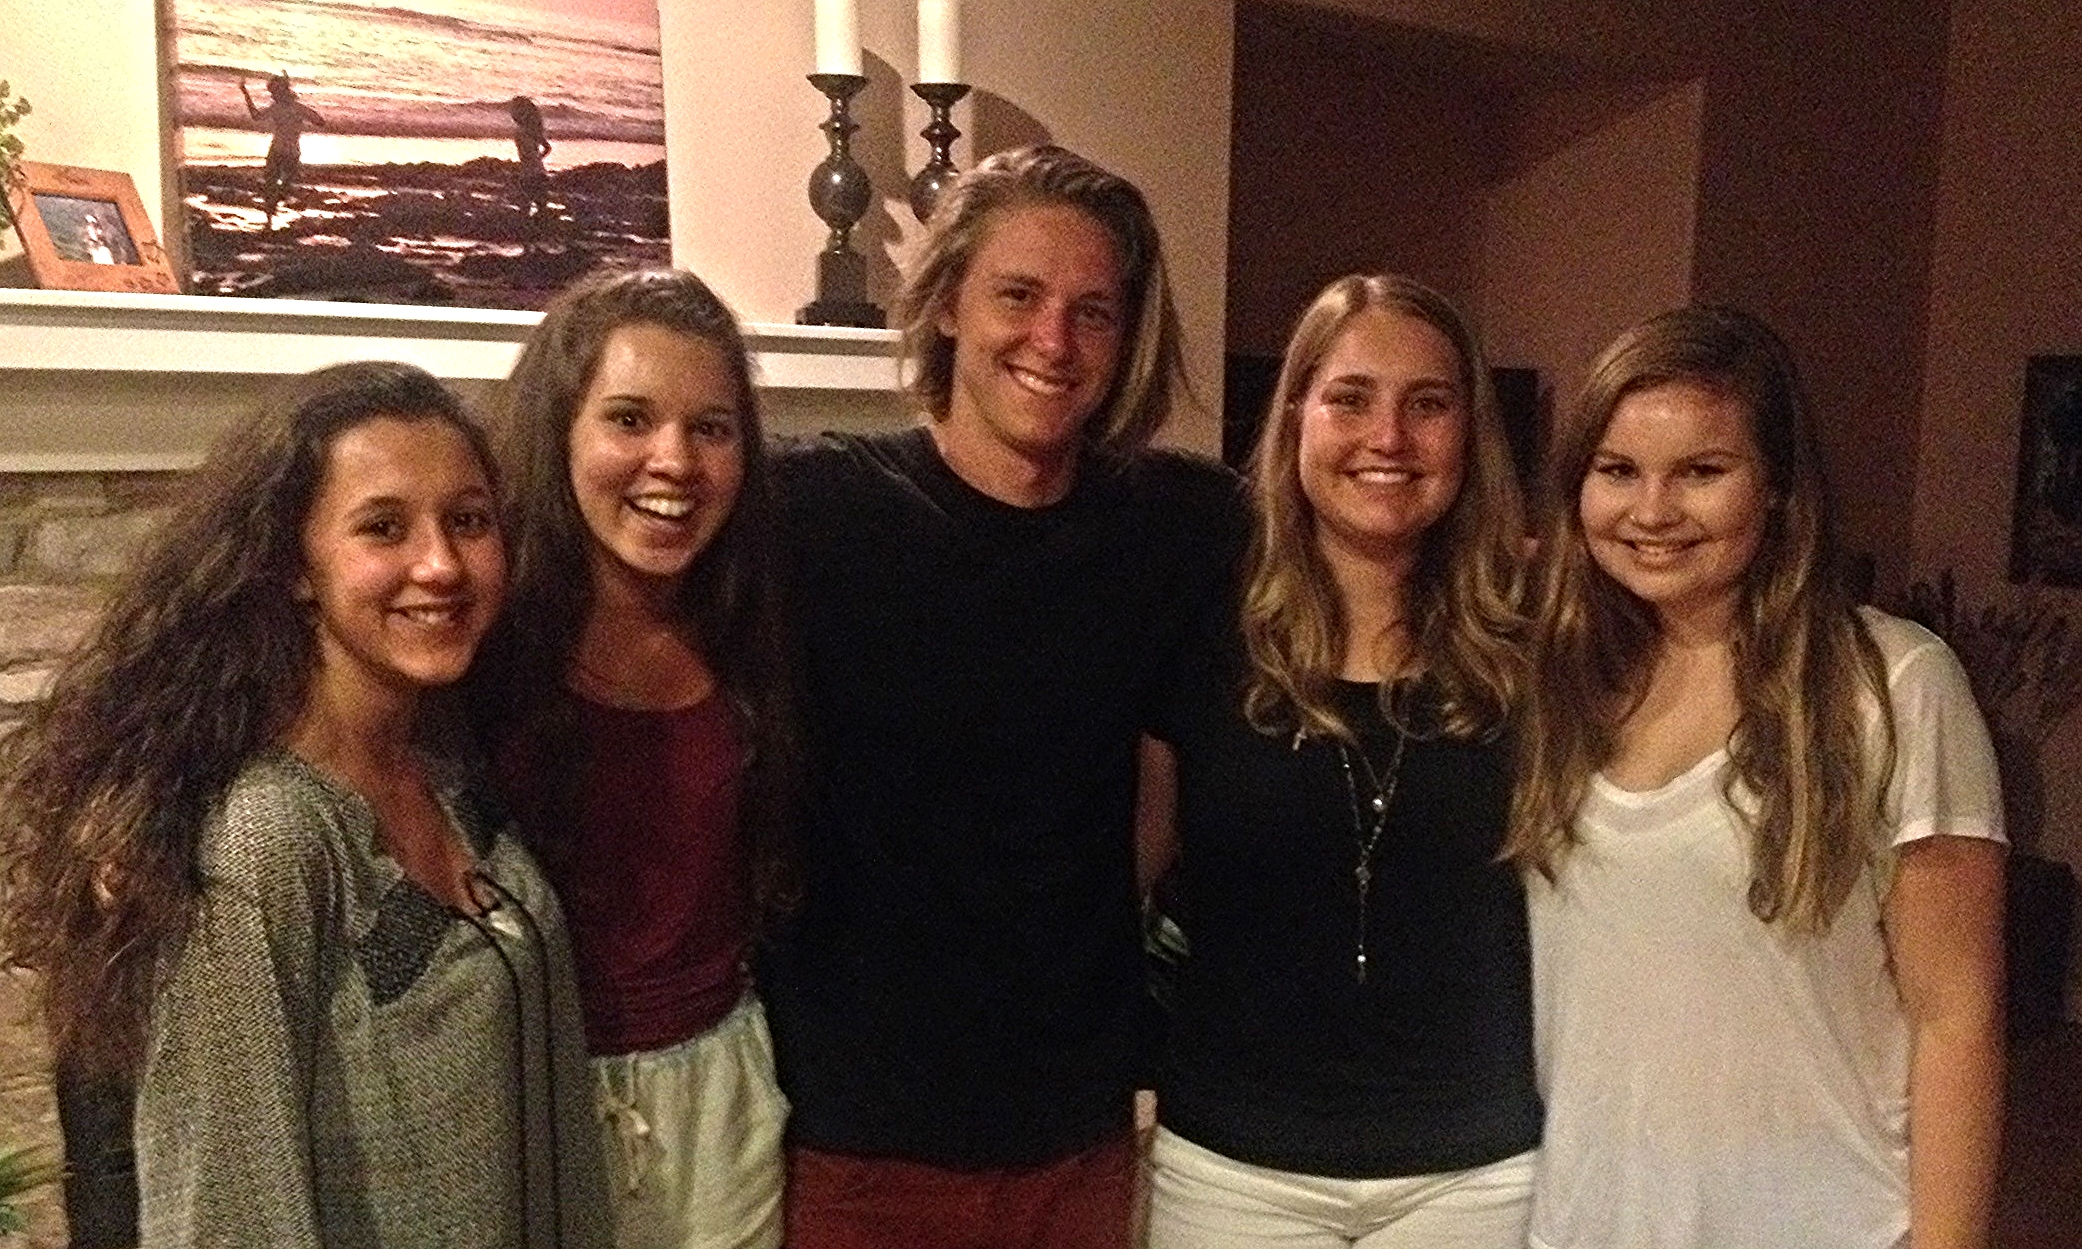 Trevor, the Reed girls and their best friends all experiencing God's love when we come together.